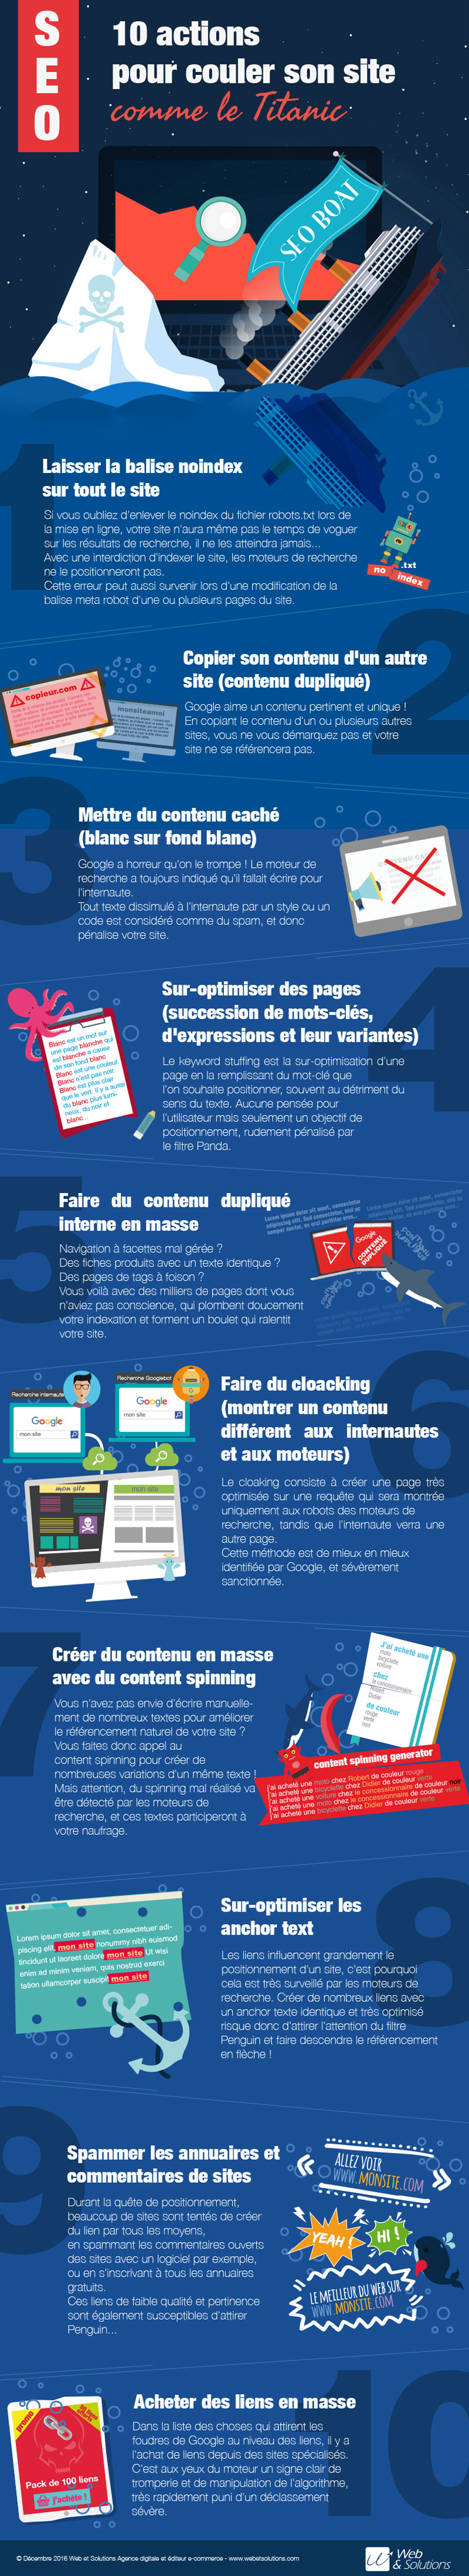 infographie-referencement-10-actions-loupees-titanic